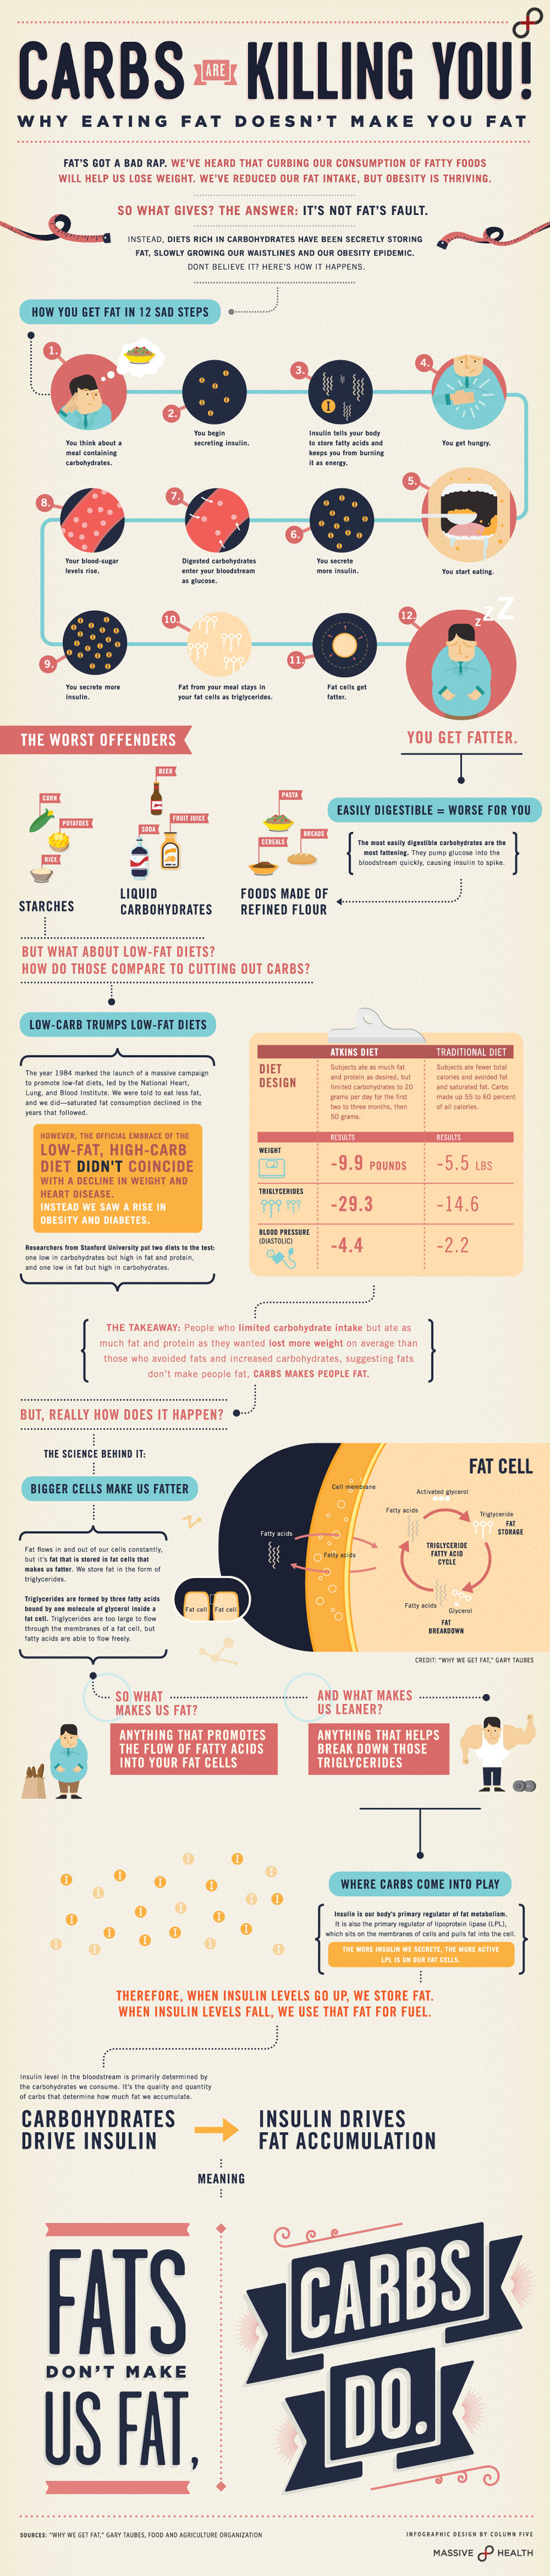 Infographic: Carbs Are Killing You: Eating Fat Doesn't Make You Fat